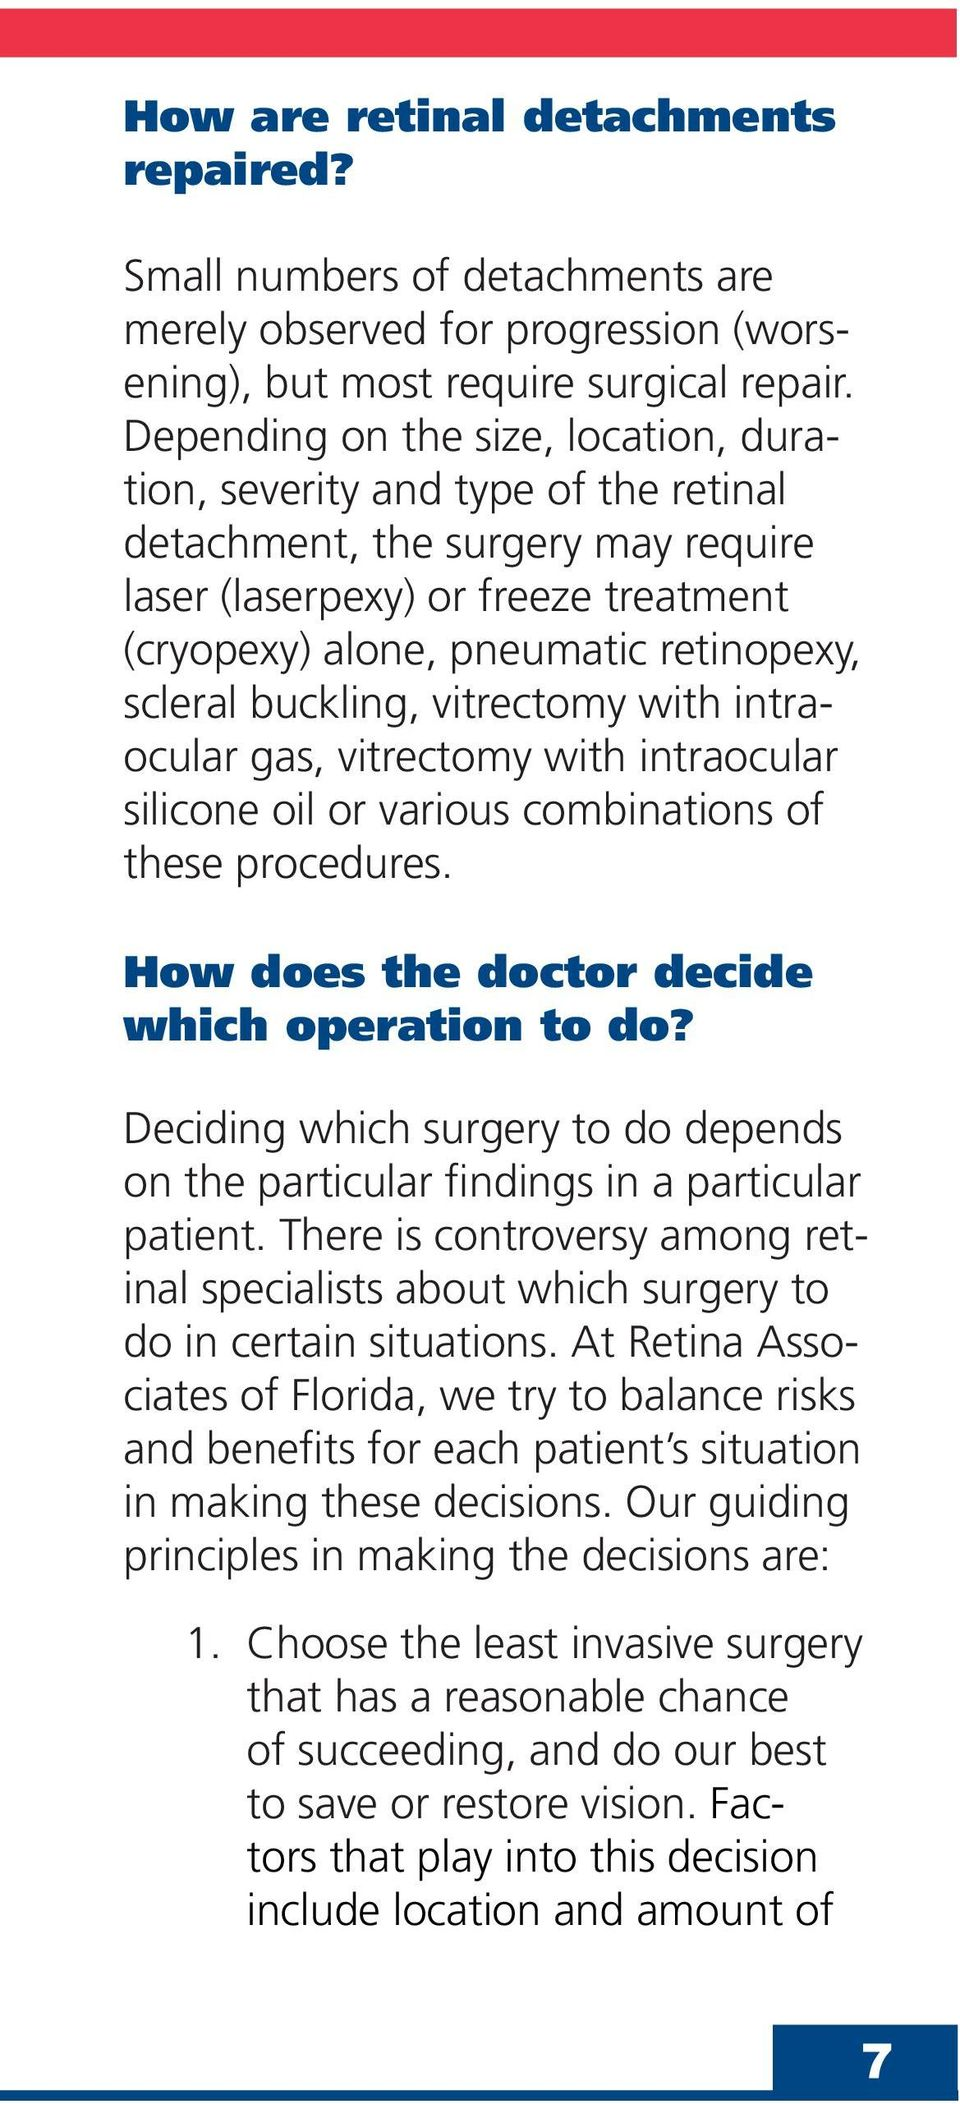 buckling, vitrectomy with intraocular gas, vitrectomy with intraocular silicone oil or various combinations of these procedures. How does the doctor decide which operation to do?